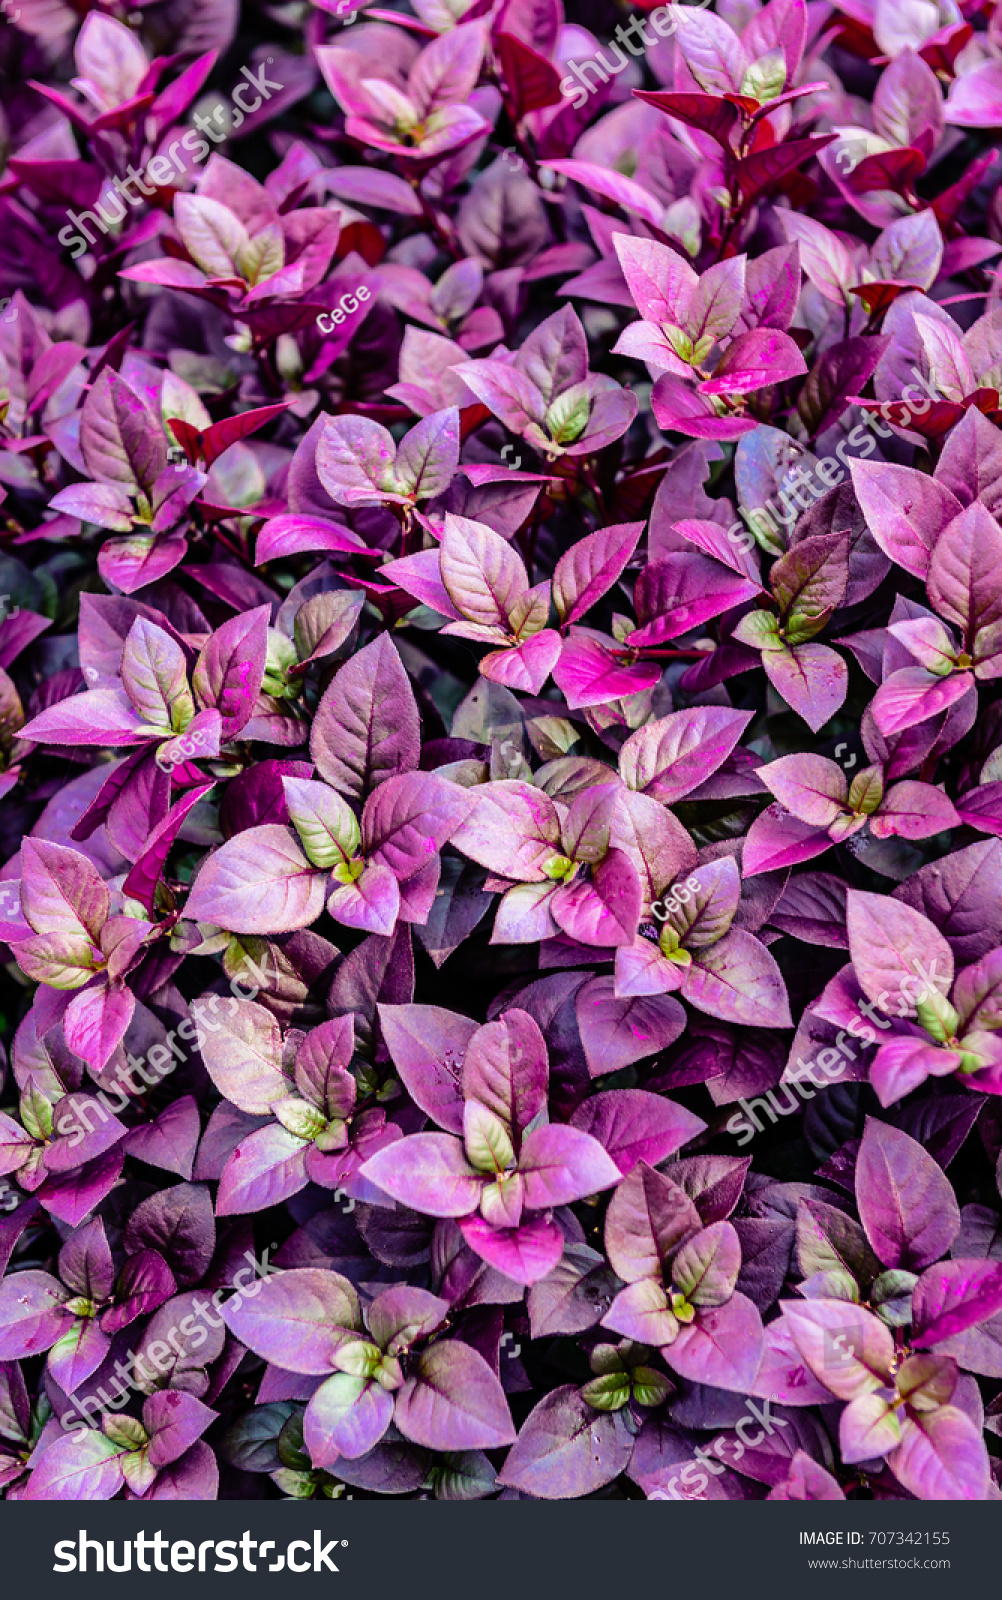 Barberry bush with its purple leaves is a very popular ornamental barberry bush with its purple leaves is a very popular ornamental plant often used as boundary hedges this image was captured late afternoon during summer mightylinksfo